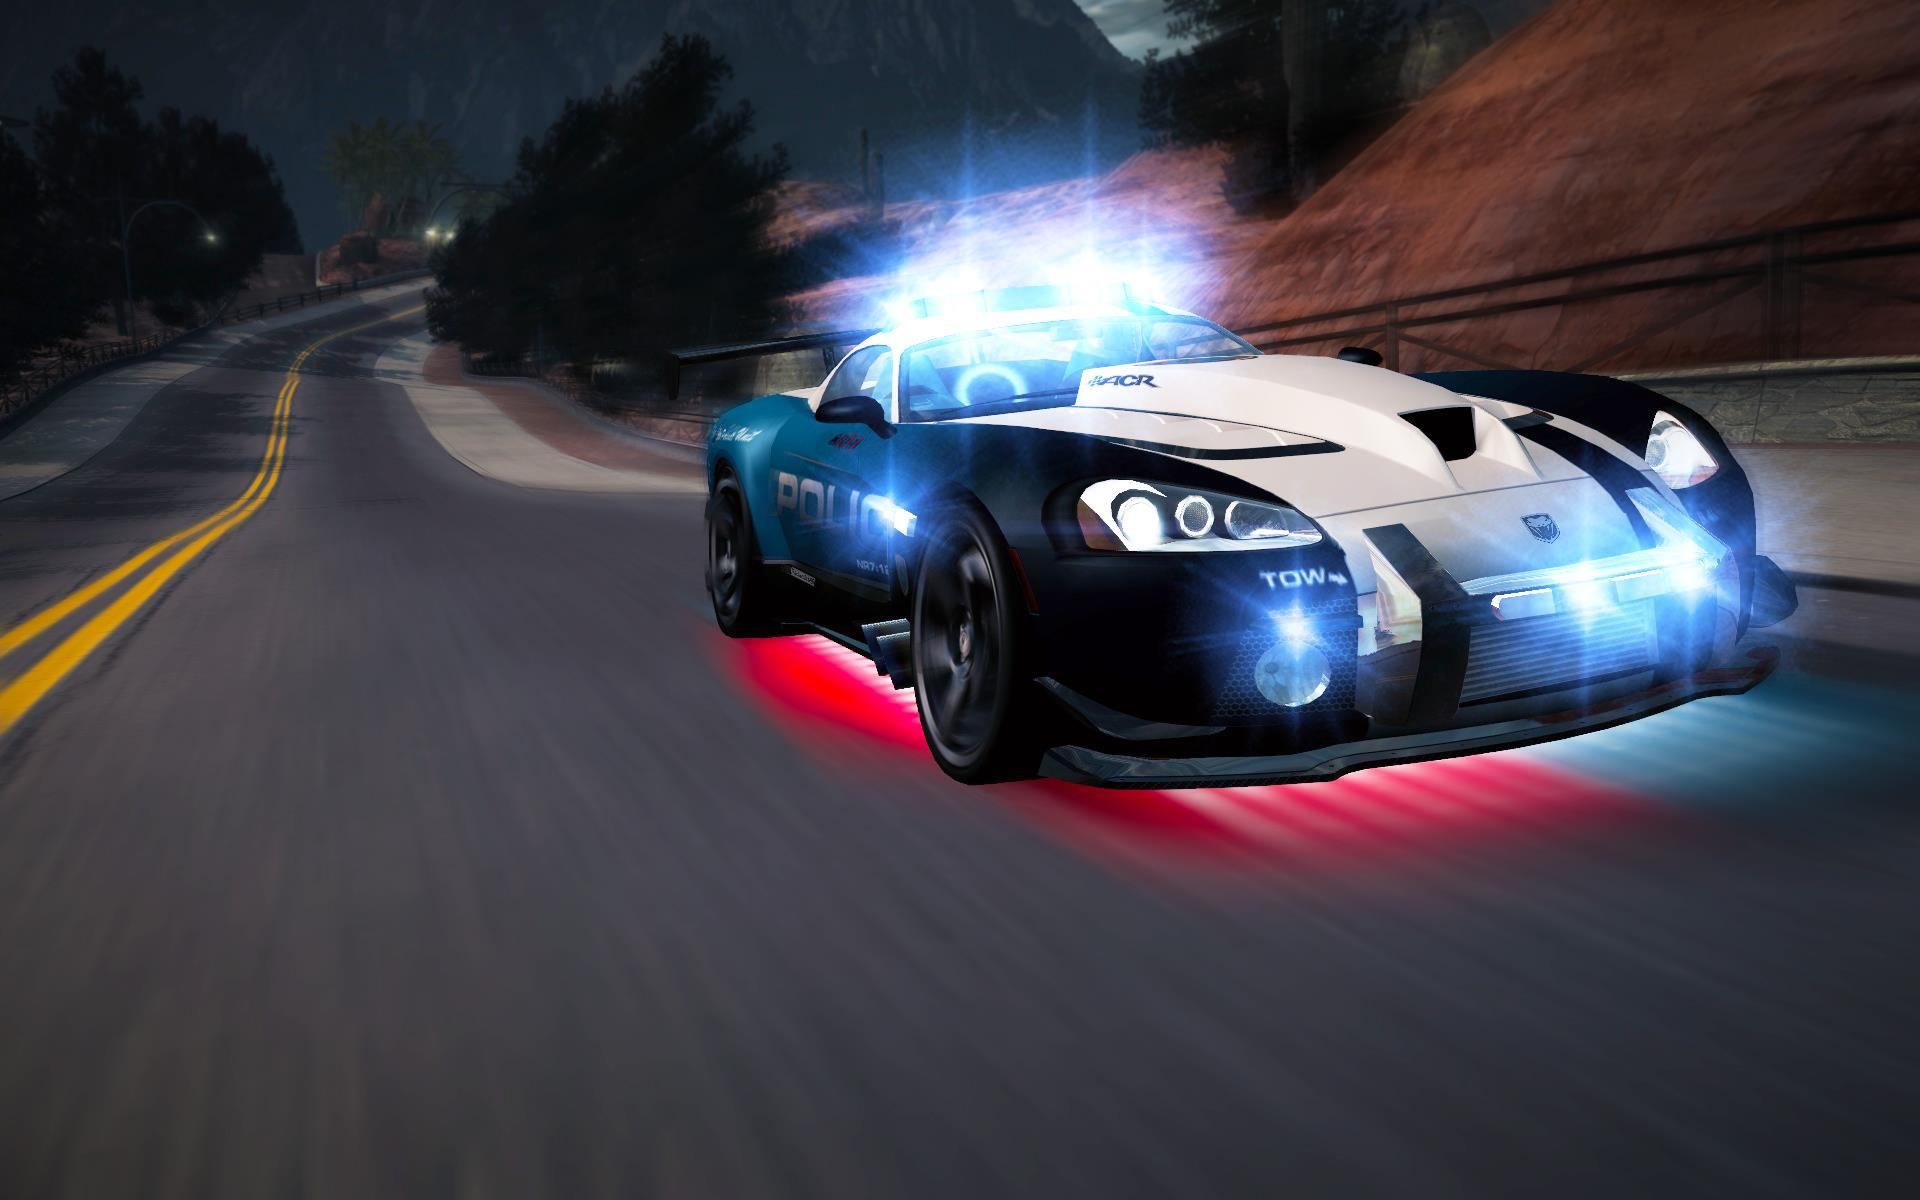 Dodge Viper SRT-10 ACR | NFS World Wiki | FANDOM powered by Wikia